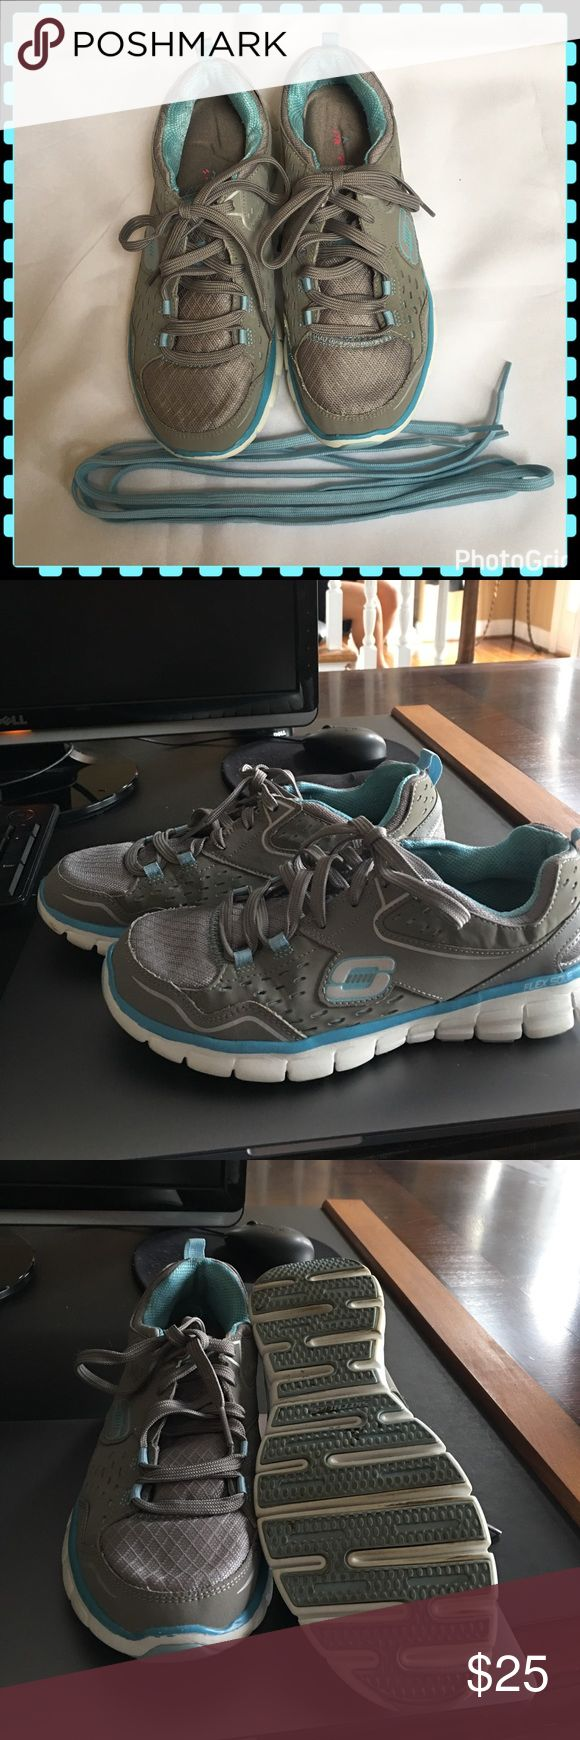 Skechers Flex Sole Sneakers Skechers Flex Sole Sneakers. Comes With Two Pairs of laces. Memory Foam Insoles. Gently Used. Skechers Shoes Slippers